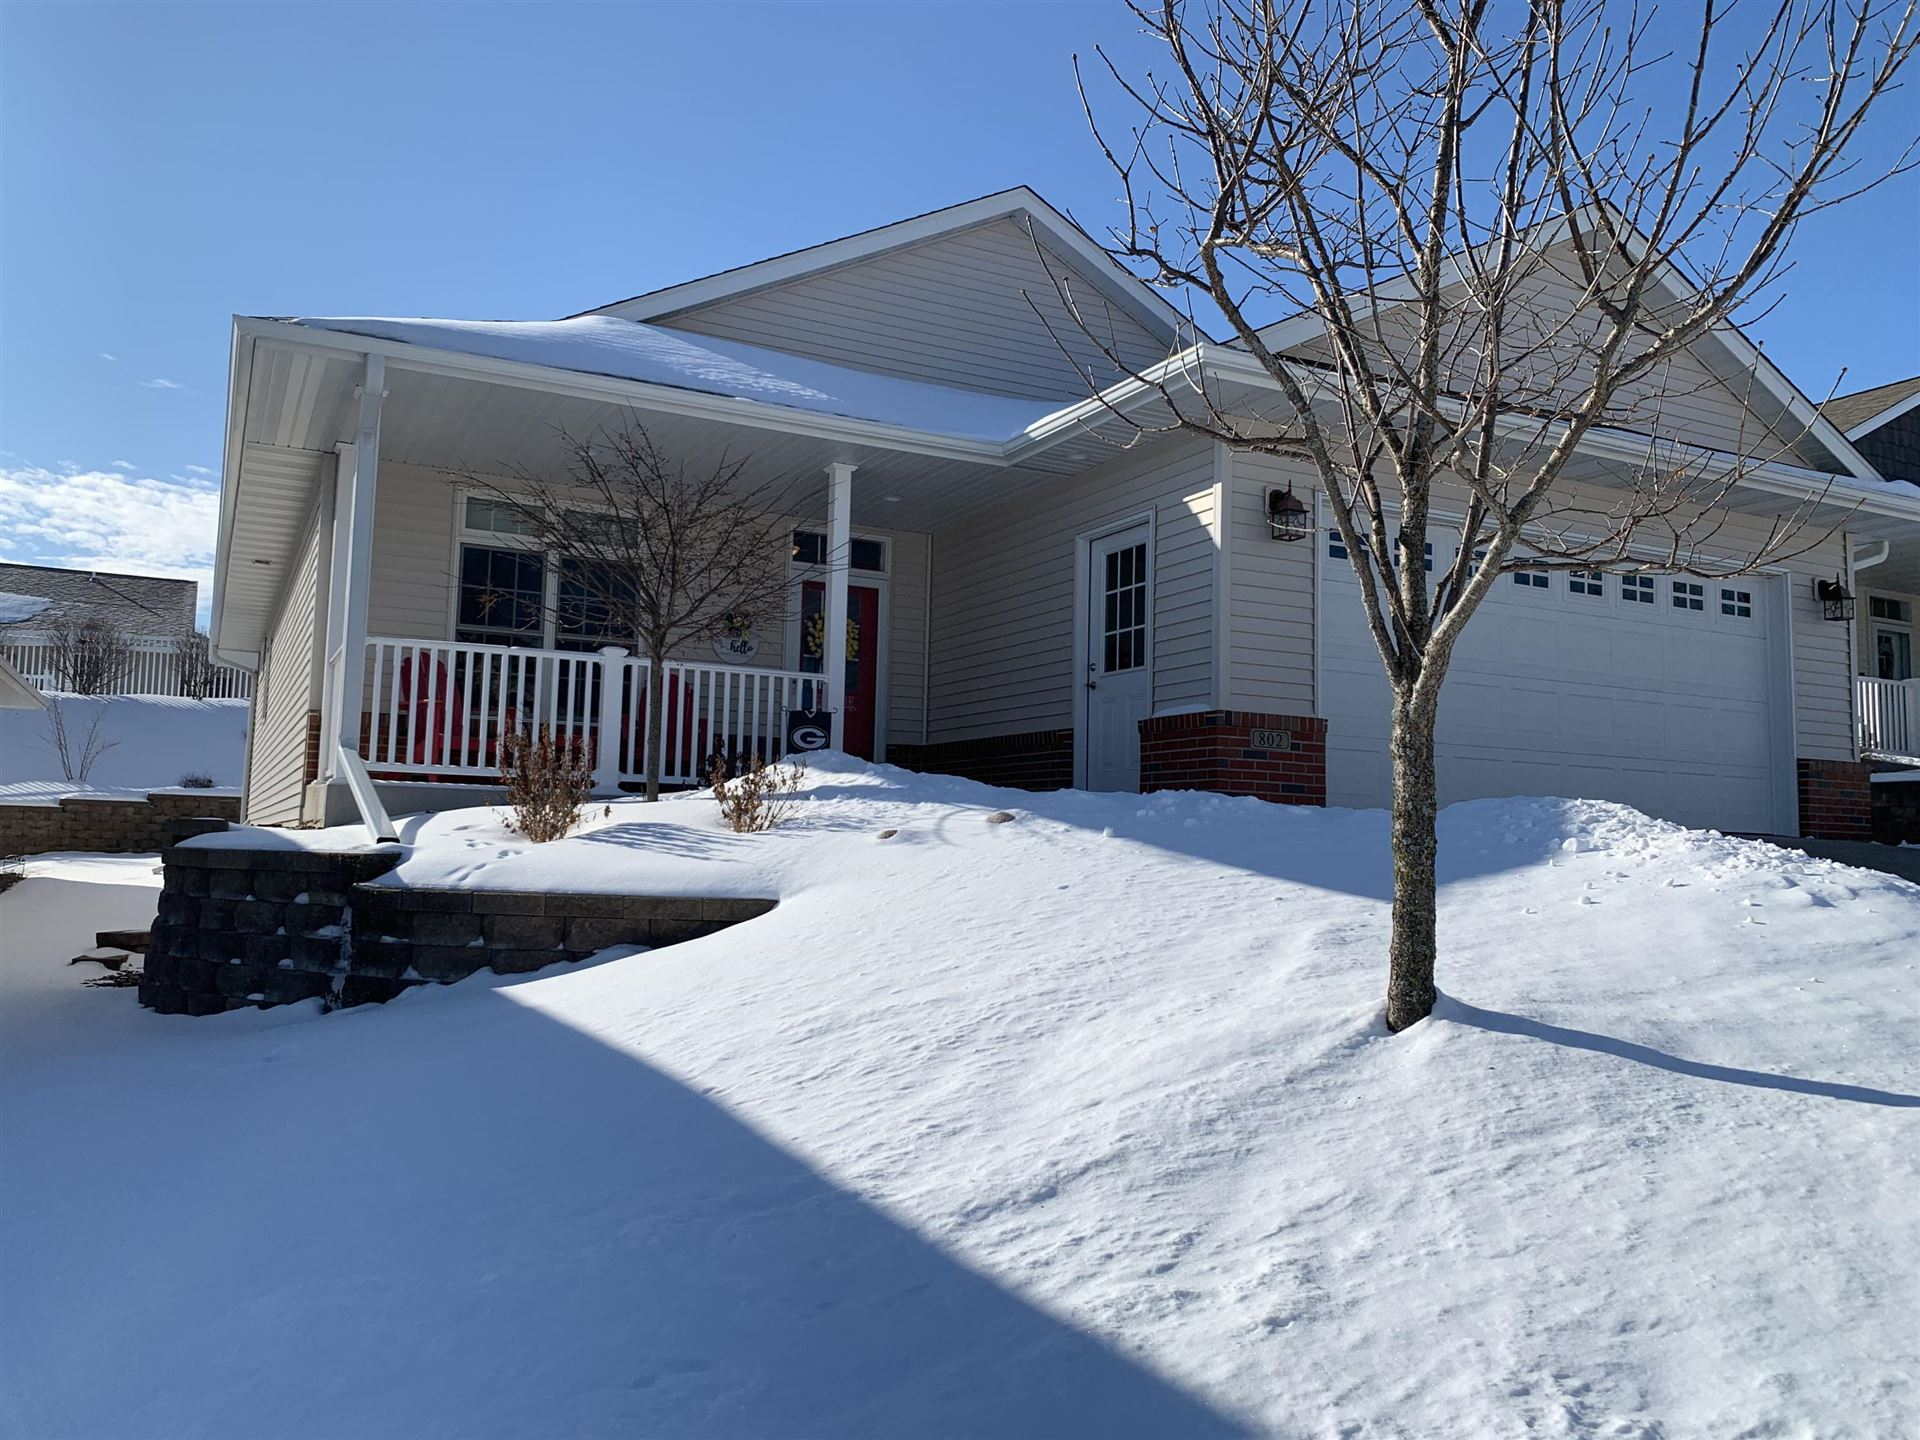 802 Maple Shade Dr, Holmen, WI 54636 - MLS#: 1723498